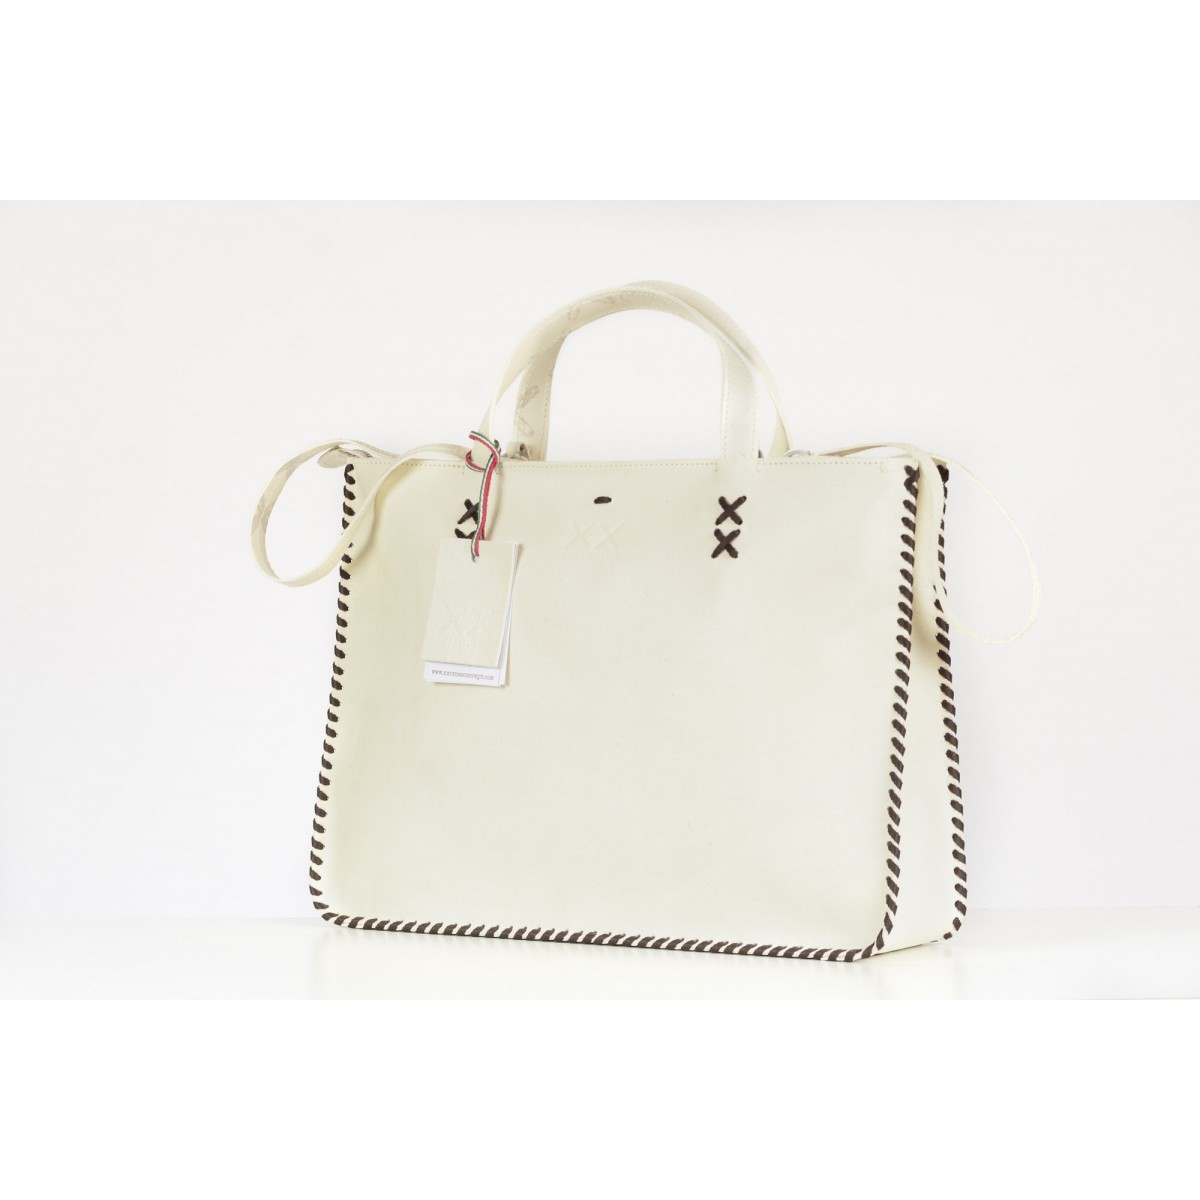 Borsa Xx Cross Concept - Hb2 Pelle Rovesciata Shopping Bag